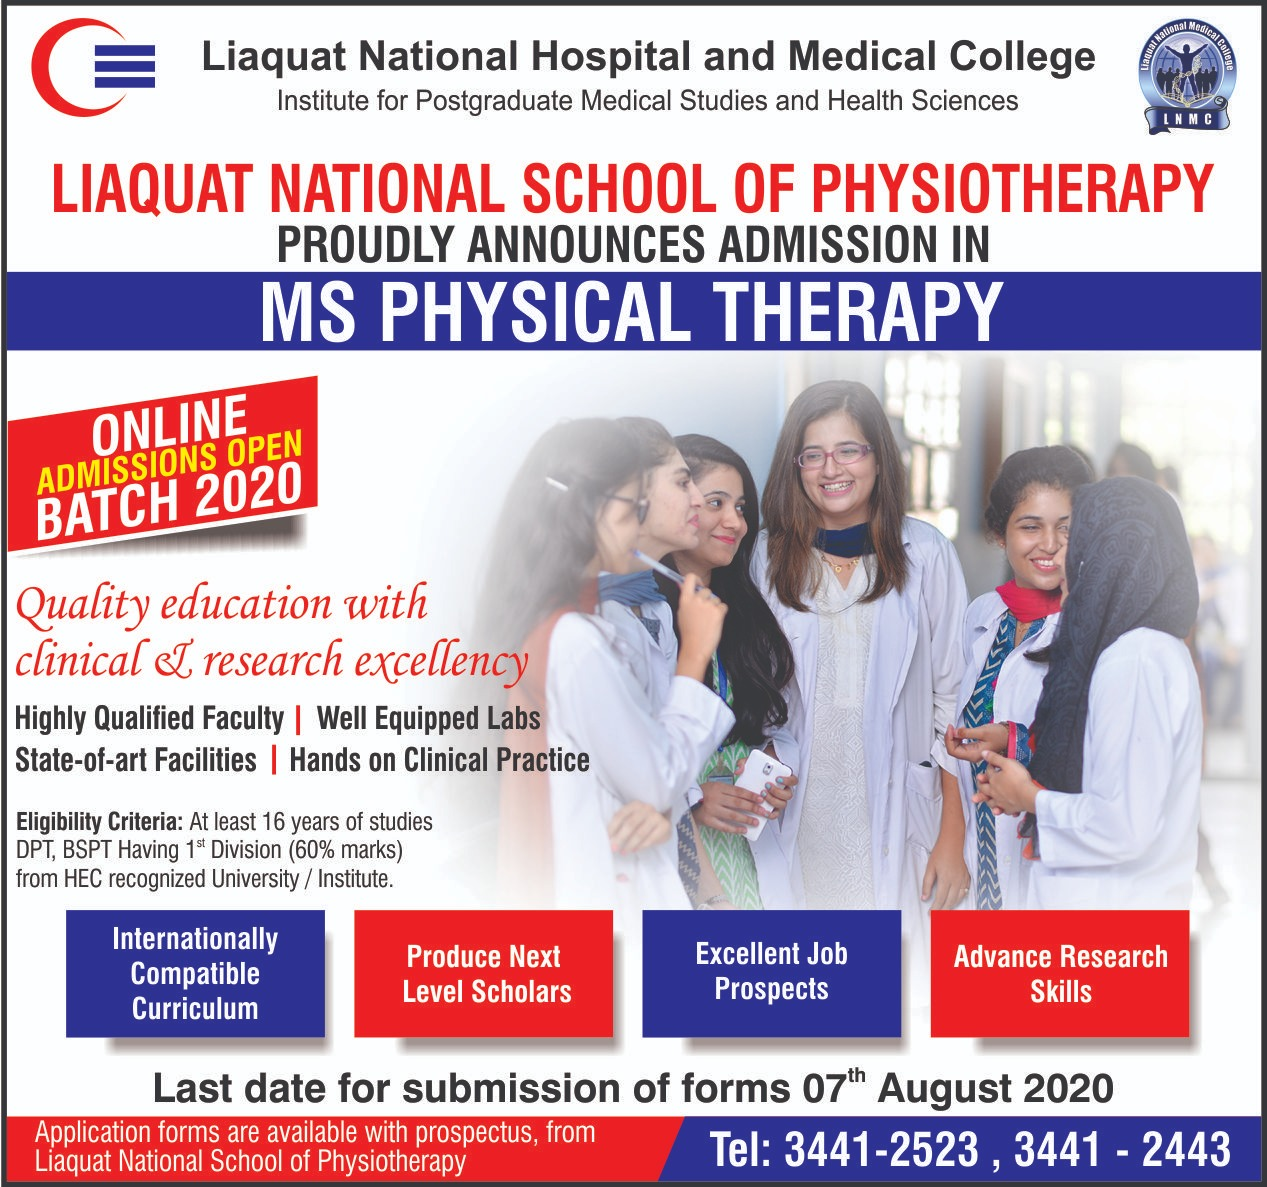 Admission in MS Physical Therapy